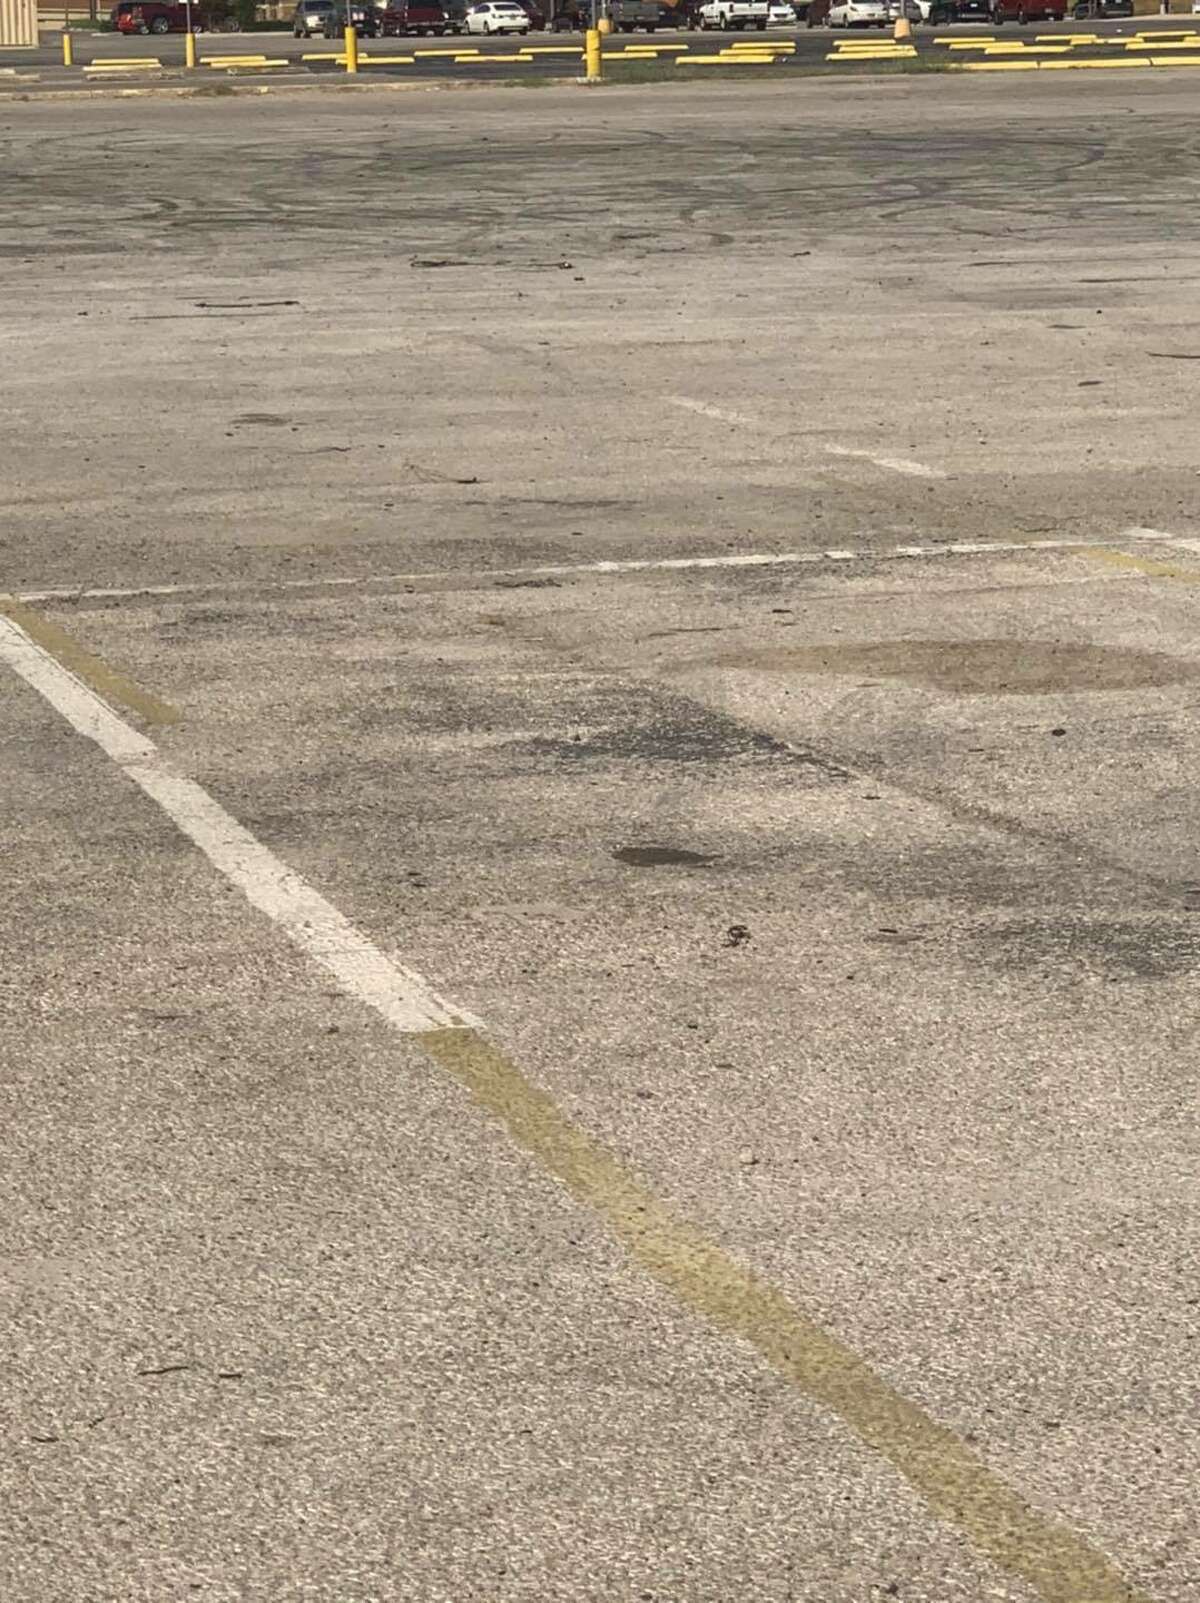 Local event center owner speaks out after her property was allegedly vandalized by street racers last weekend.